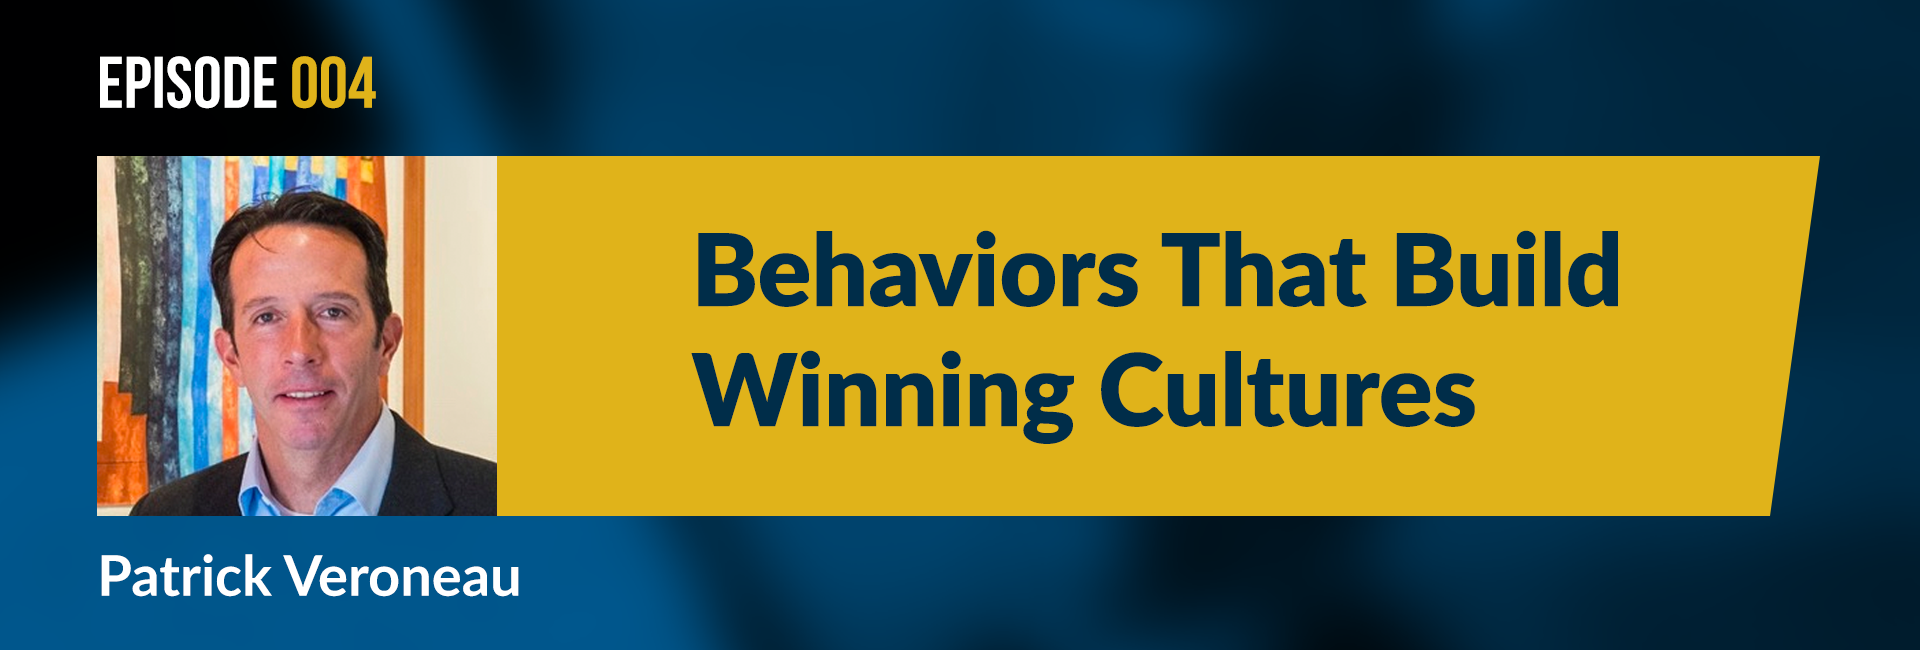 Episode 4 Behaviors that build winning cultures